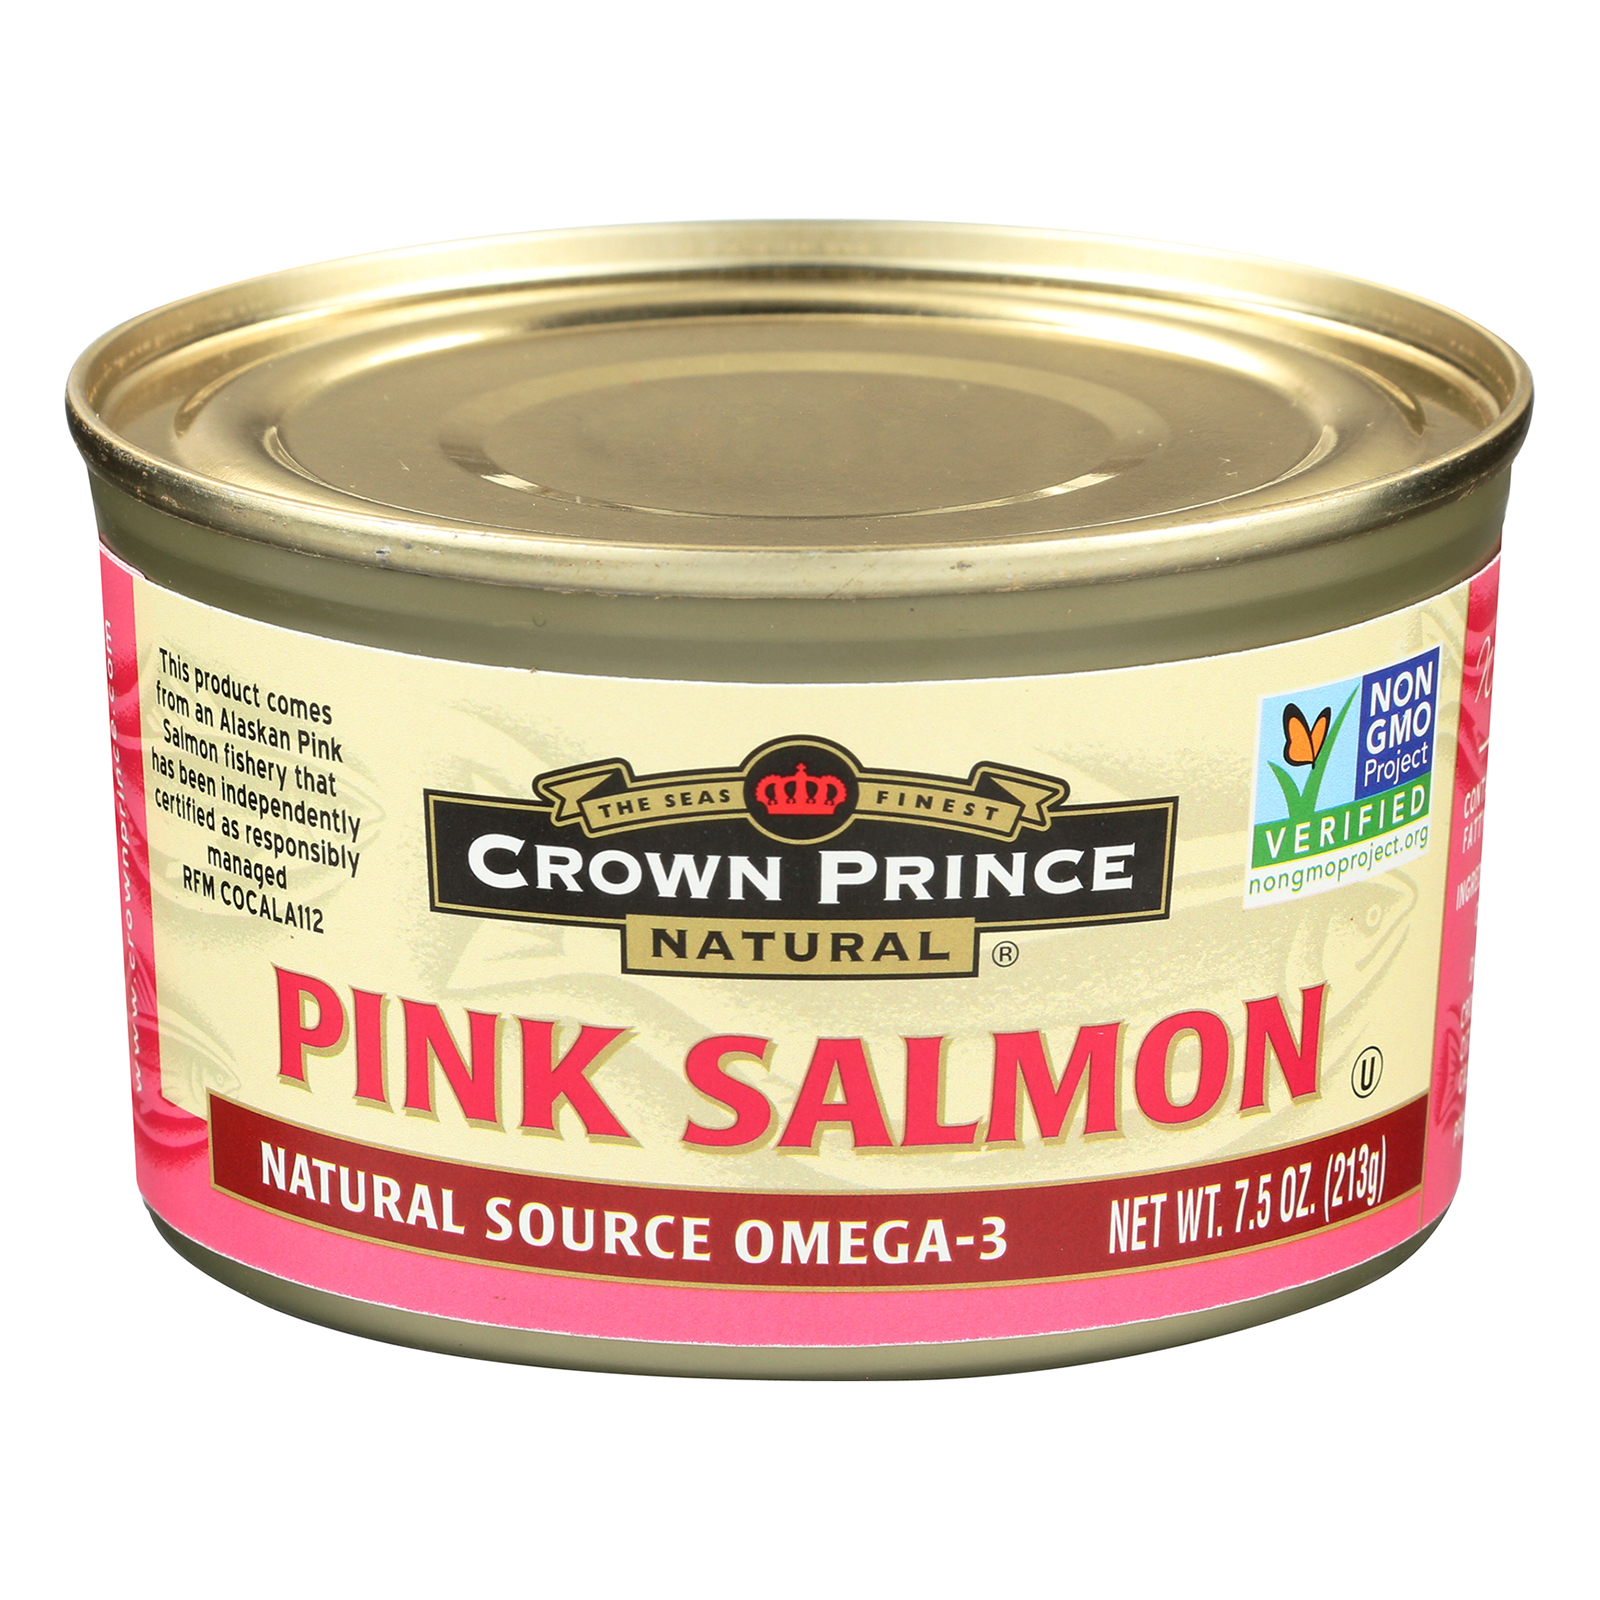 Crown Prince Alaskan Pink Salmon Case of 12 7.5 oz. by